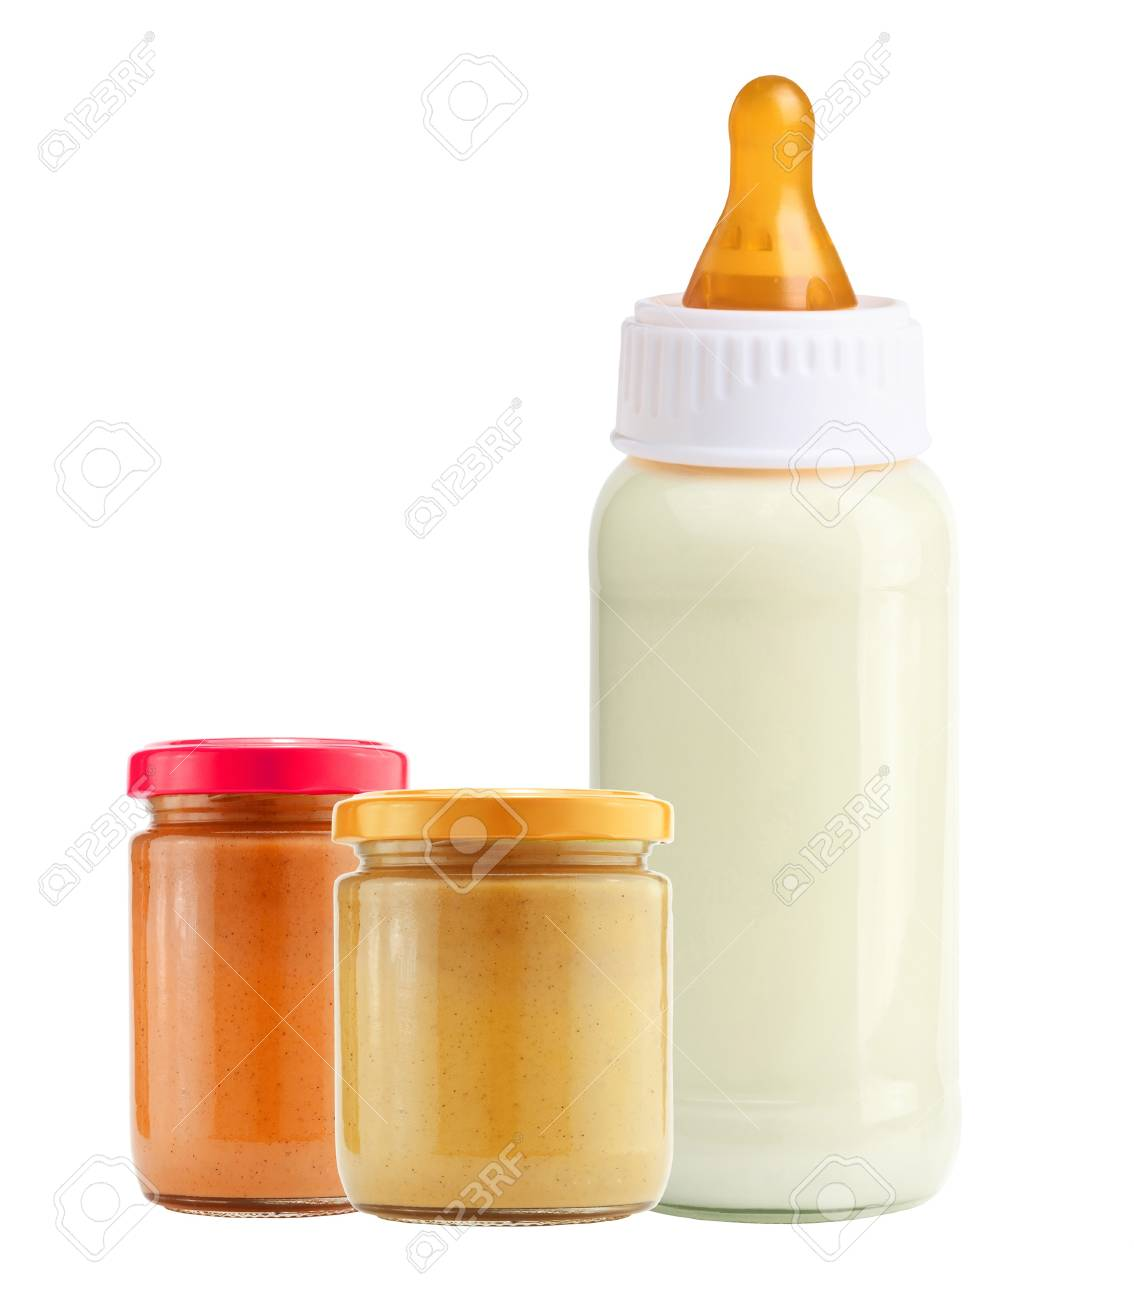 baby food and and milk bottle isolated on white background Stock Photo - 17859718